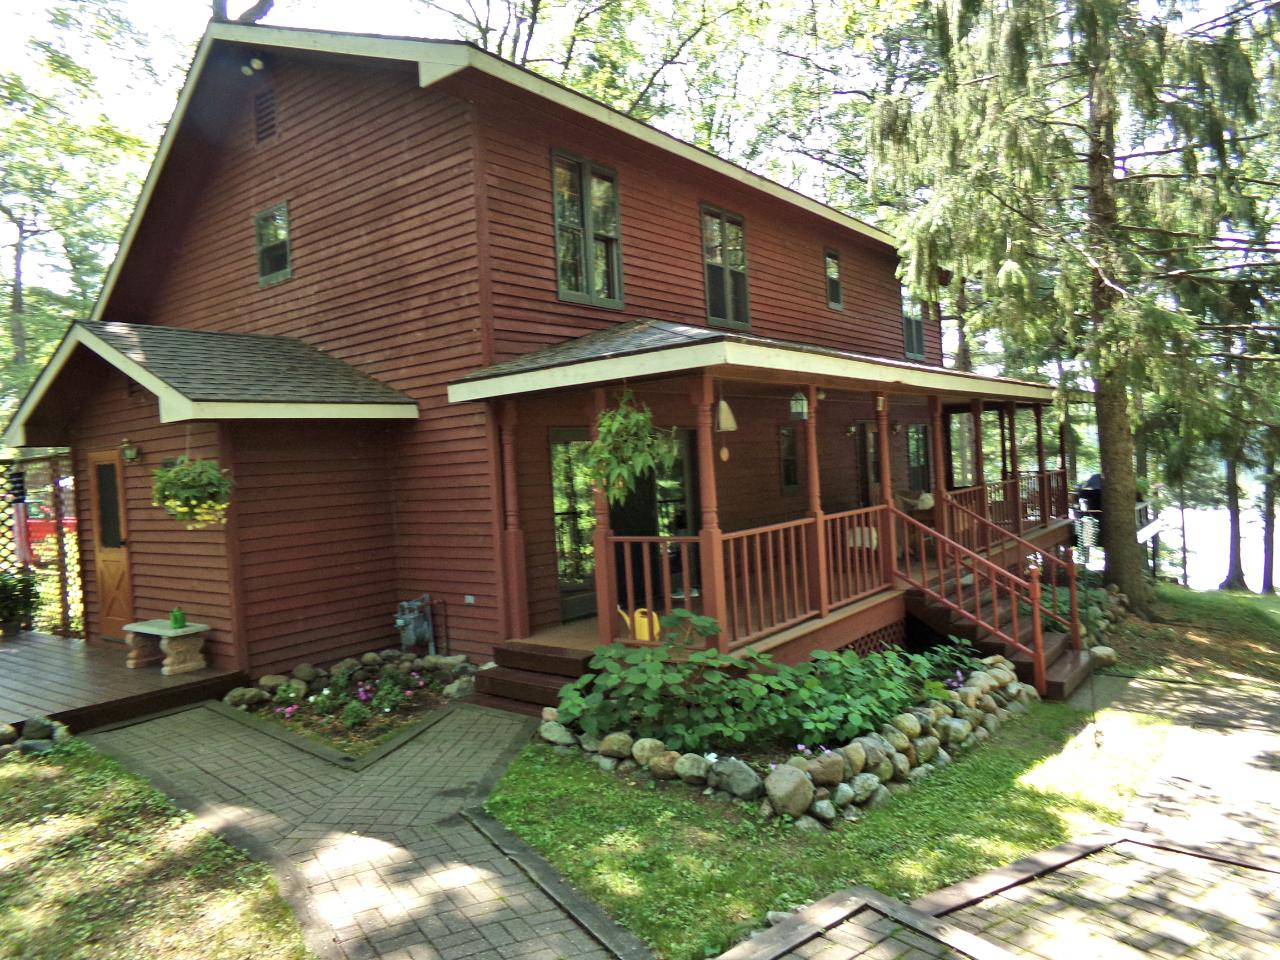 Your peaceful lakefront retreat awaits! This custom 4BR, 2BA, 2-story lake home is on a quiet lake in the heart of the Northwoods. With sunny southern exposure & expansive views of 80% state-owned Mann Lake, the house features 9' ceilings with pine beams, hardwood floors, open kitchen/dining, walk-in pantry, 1st floor laundry, full bsmnt, large master with lake views & walk-in closet, covered porch spanning length of the house, and 3-car oversized garage. New roof, living room windows & carpet. Natural gas & energy efficient furnace. 1st floor bedroom makes for ideal home office (broadband fiber optic internet coming in 2021)! Centrally located between Boulder Jct and Minocqua, 1.5 miles from Hwy 51N and a 10-min drive to grocery stores, schools, boutiques & restaurants. One mile from the nationally acclaimed Vilas County 52-mile paved bike trail system and ½ mile from snowmobile & hiking trails. Mann Lake is a serene, 261-acre lake known for its fishing, wildlife & natural beauty. Off water lots B & C lying north of Mann Lk Rd & bordering State Land is also available to the home buyer.